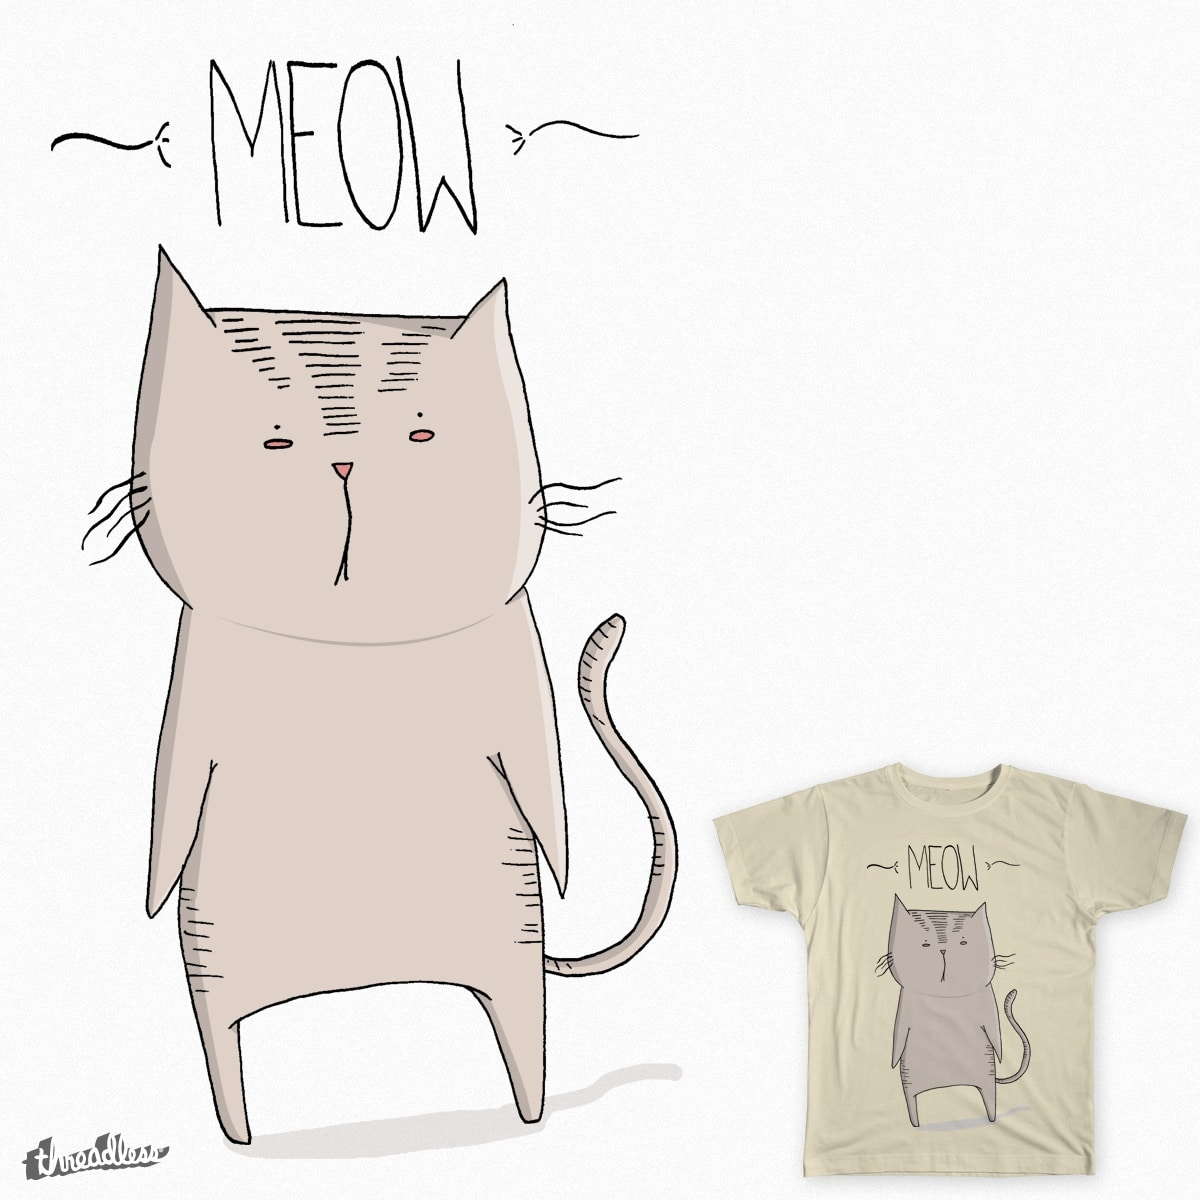 Meow by maricavalcante on Threadless